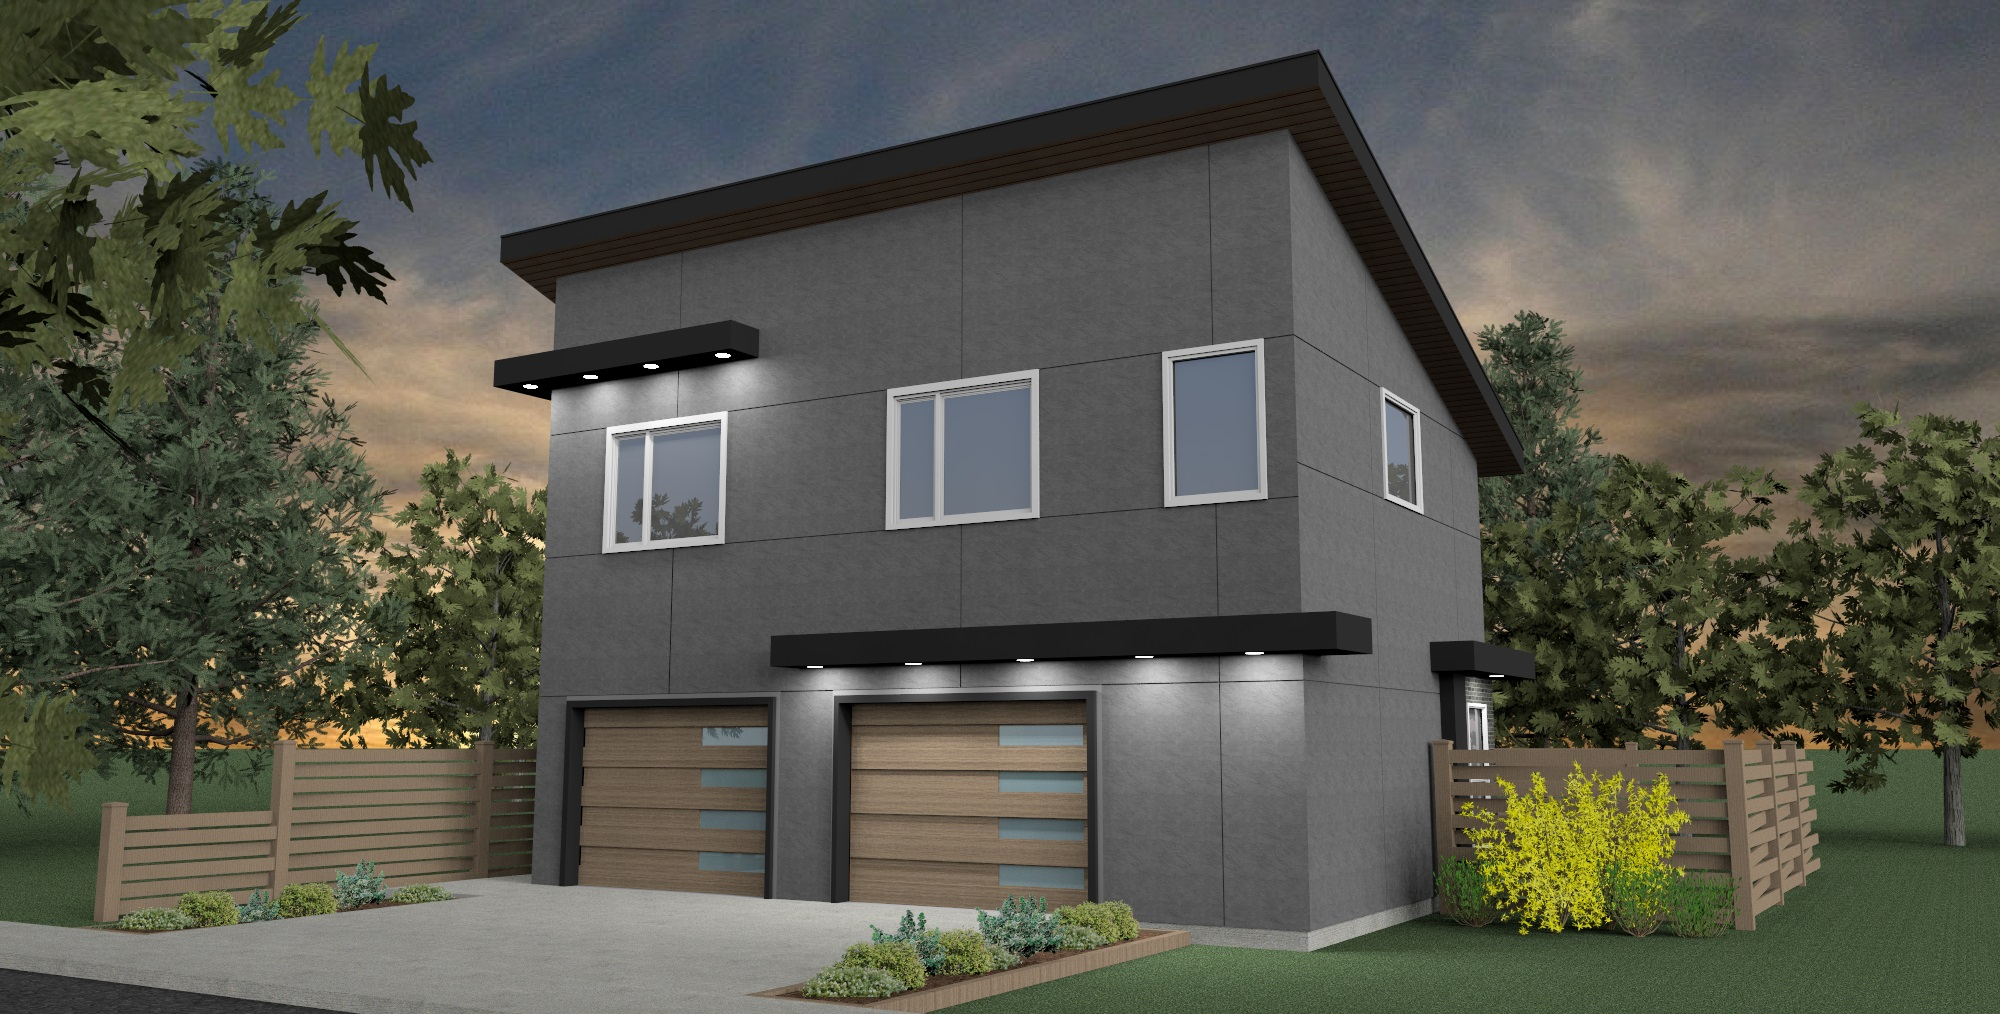 Modern Garage Suite with 2 Bedroom | Aurora Home Designs Edmonton